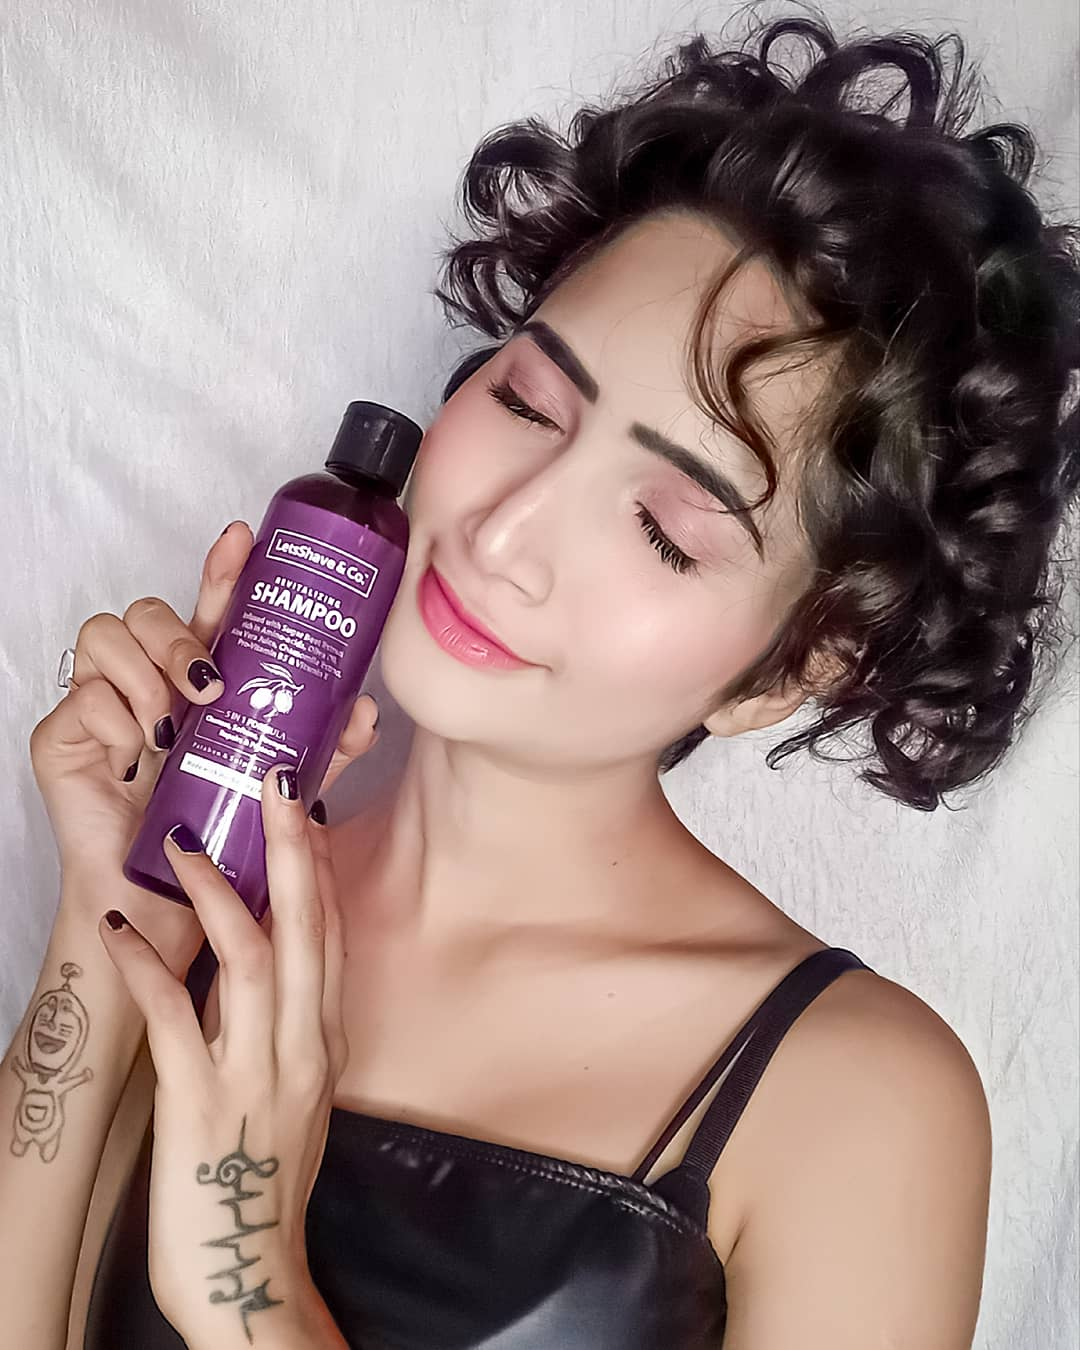 LetsShave Shampoo Conditioner Pack-My fav forever now-By cruzzie